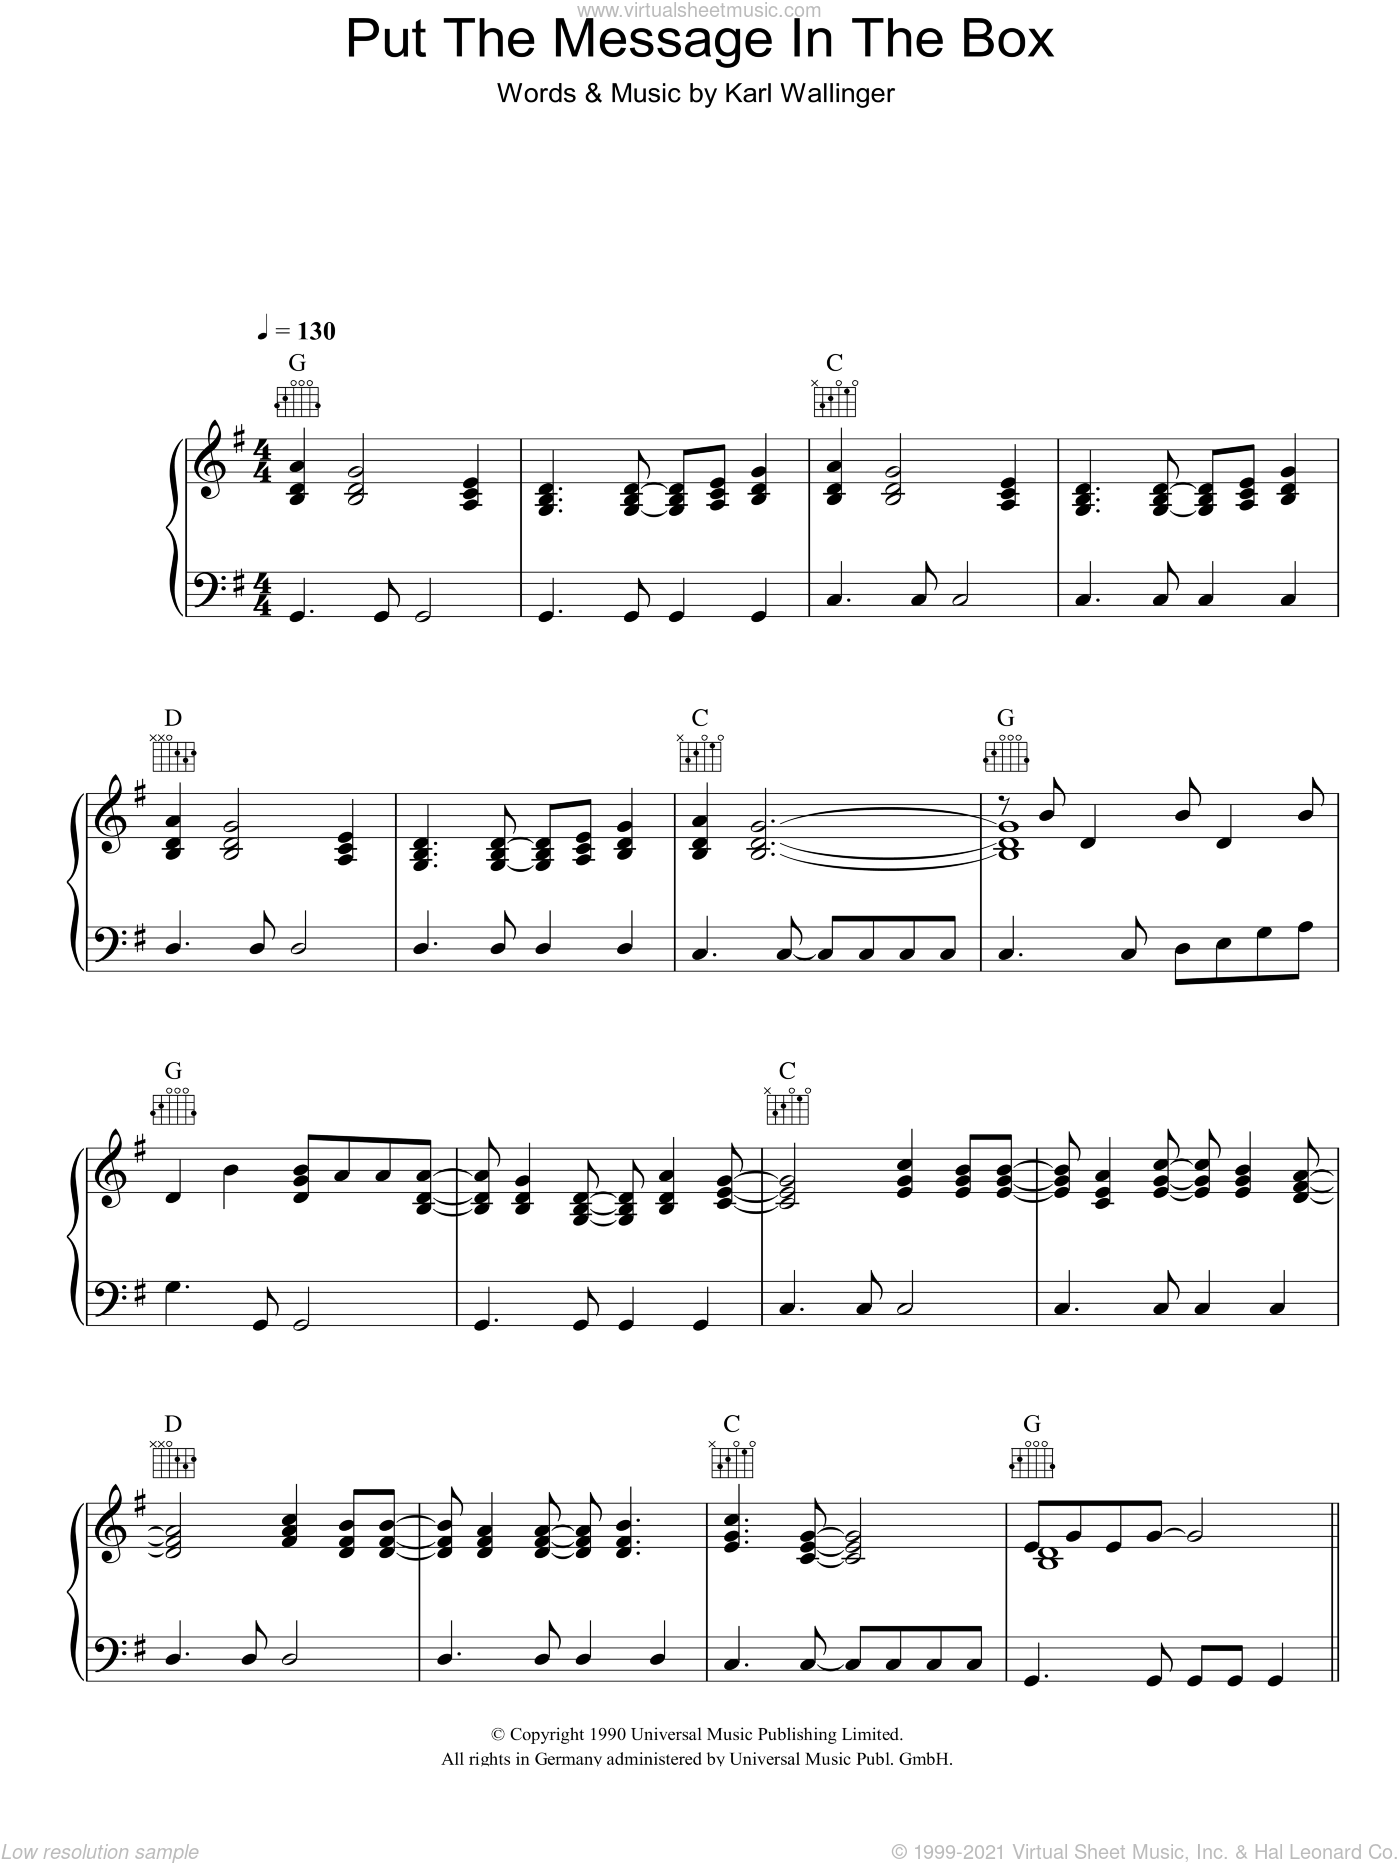 Put The Message In The Box sheet music for voice, piano or guitar by Karl Wallinger